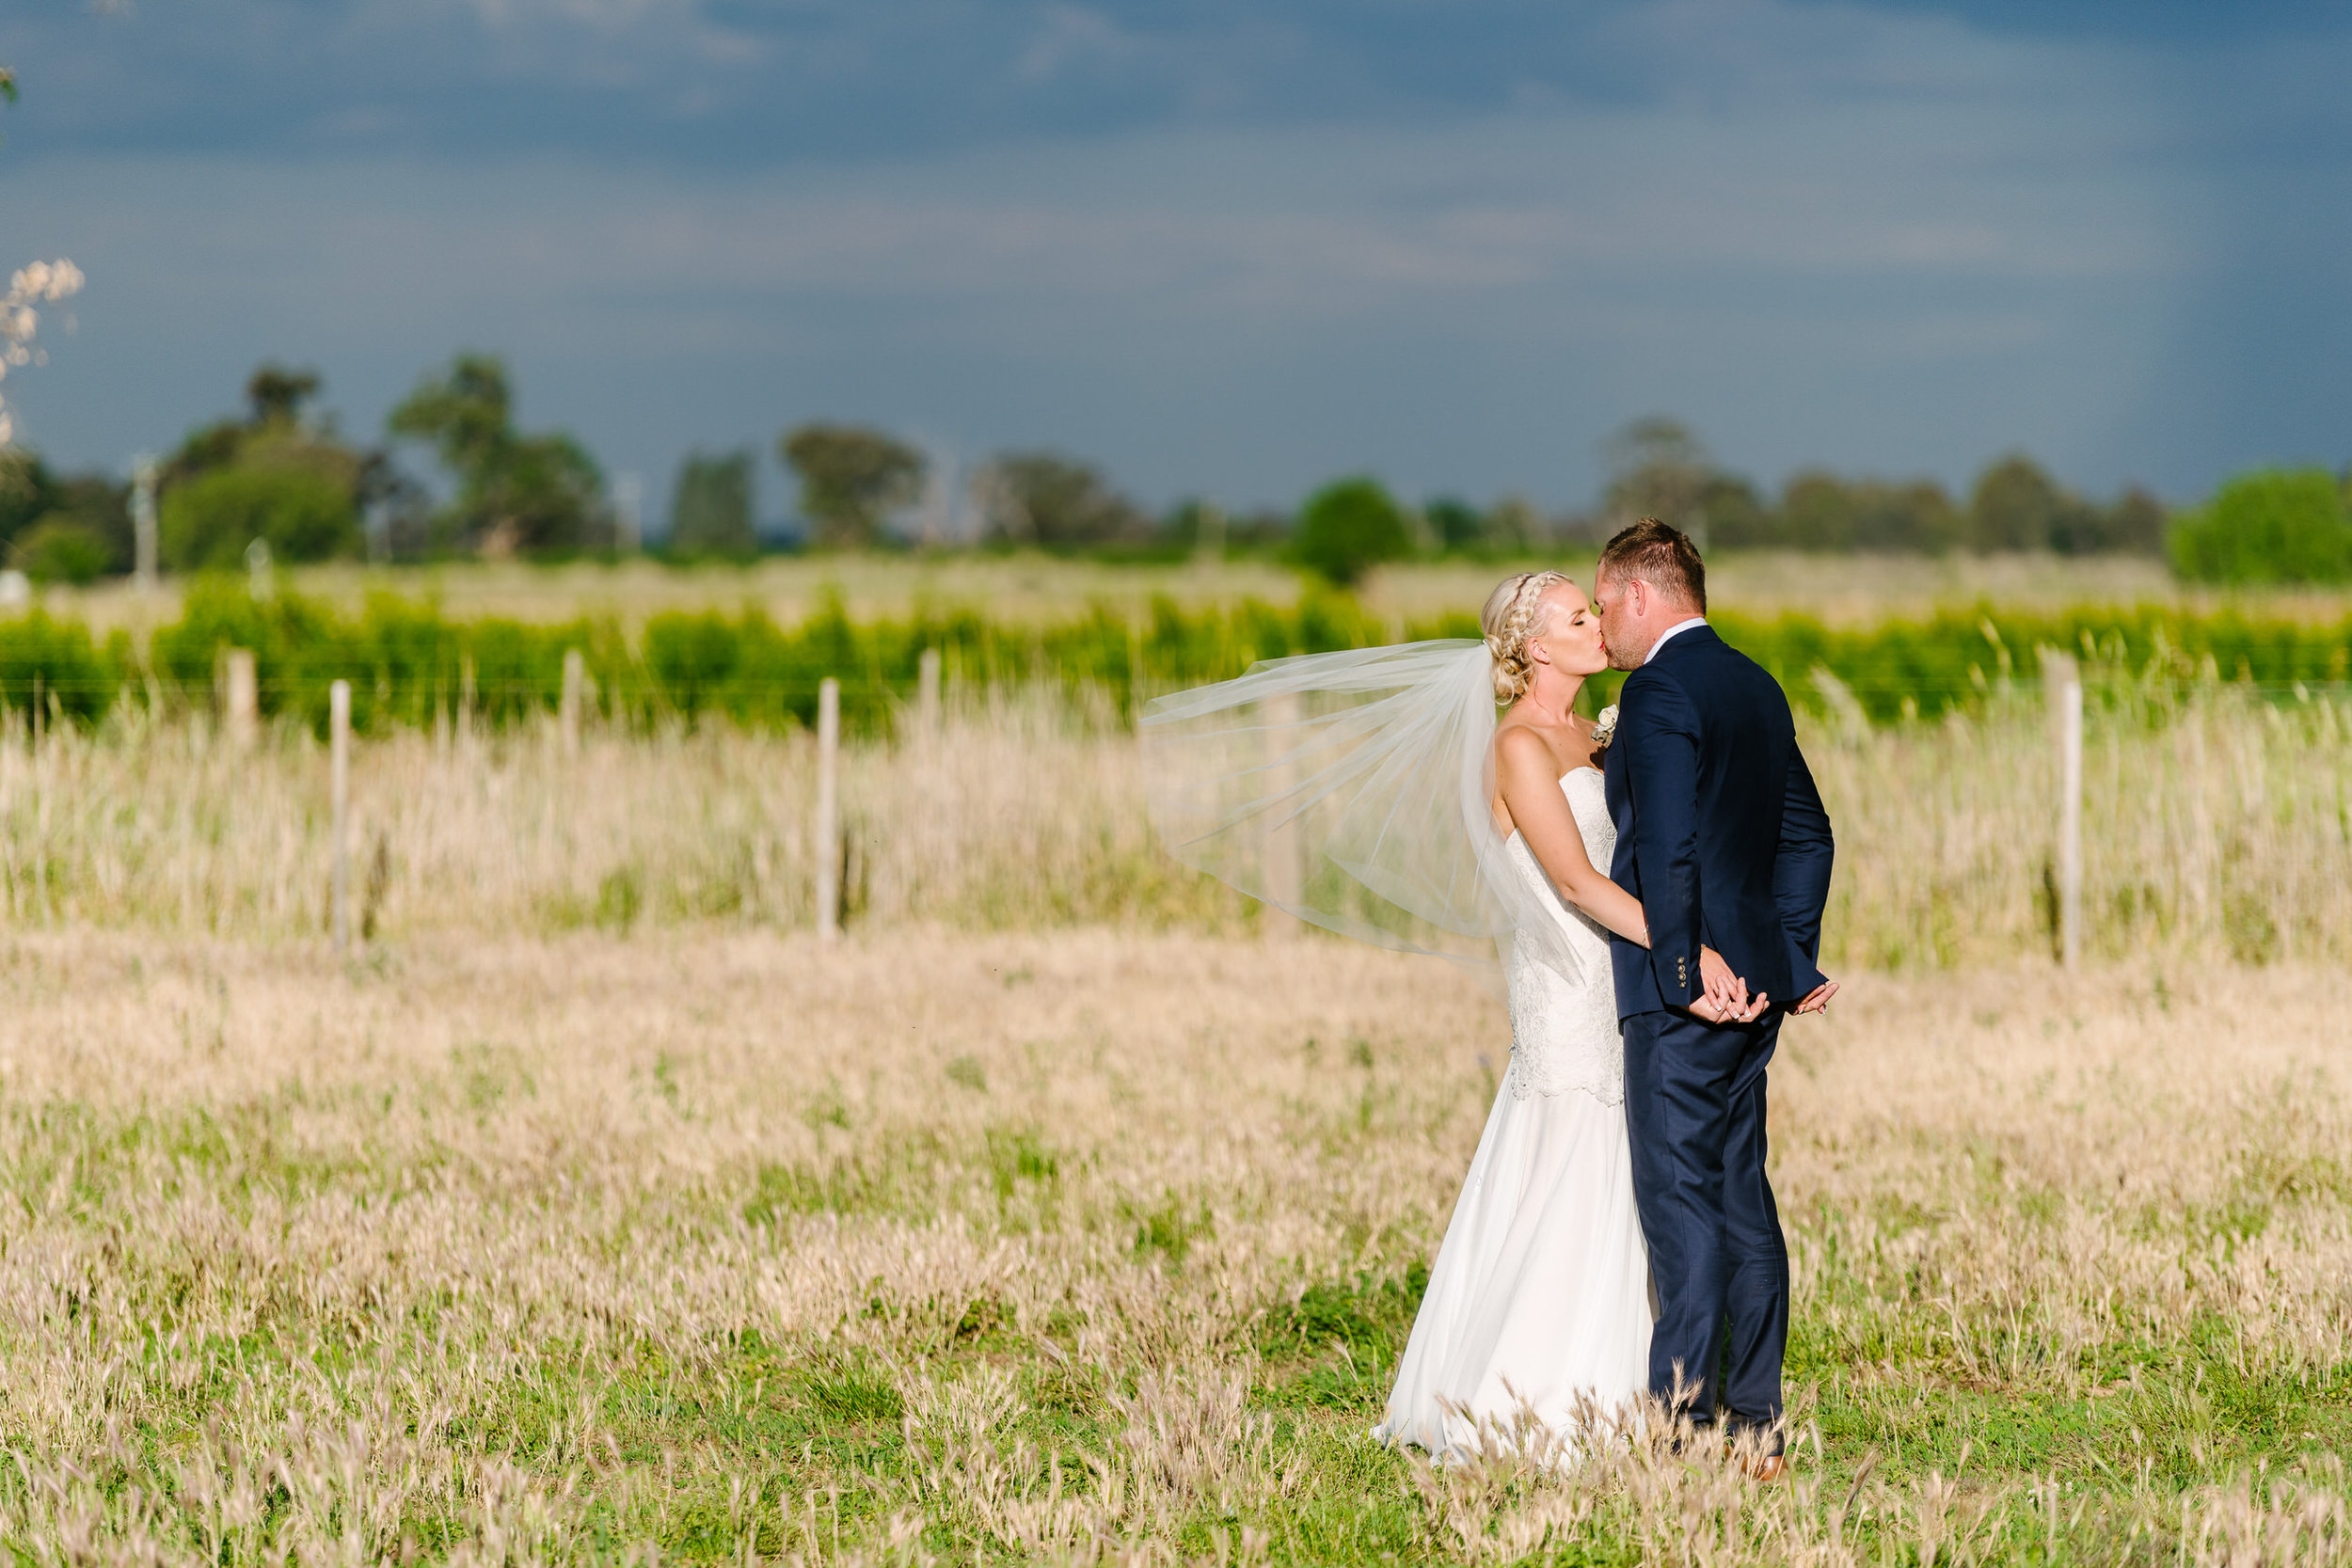 Justin_And_Jim_Photography_Byrchendale_Barn_Wedding75.JPG